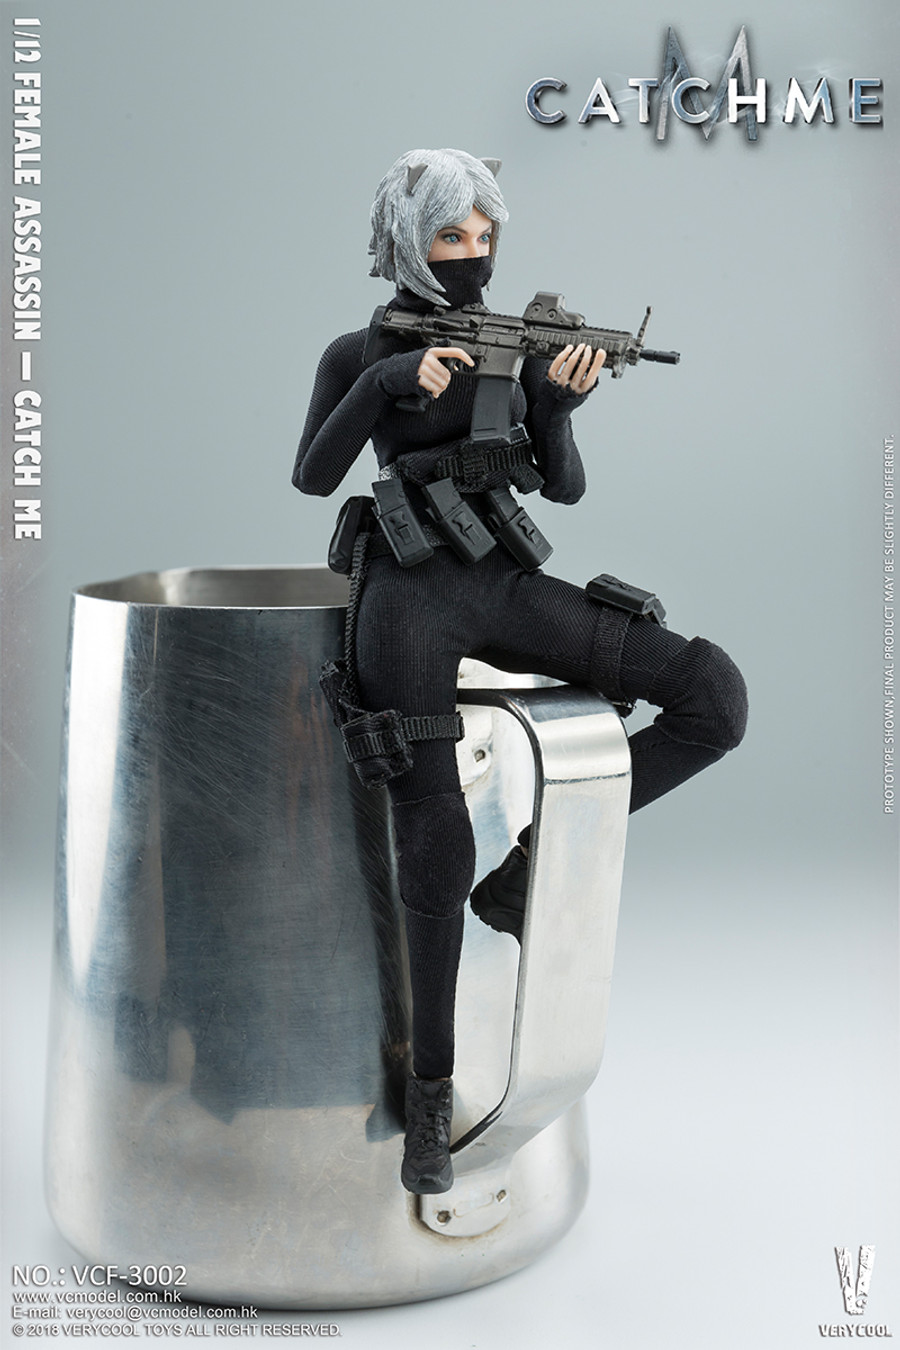 Very Cool - 1/12 Palm Treasure Series - Female Assassin Catch Me